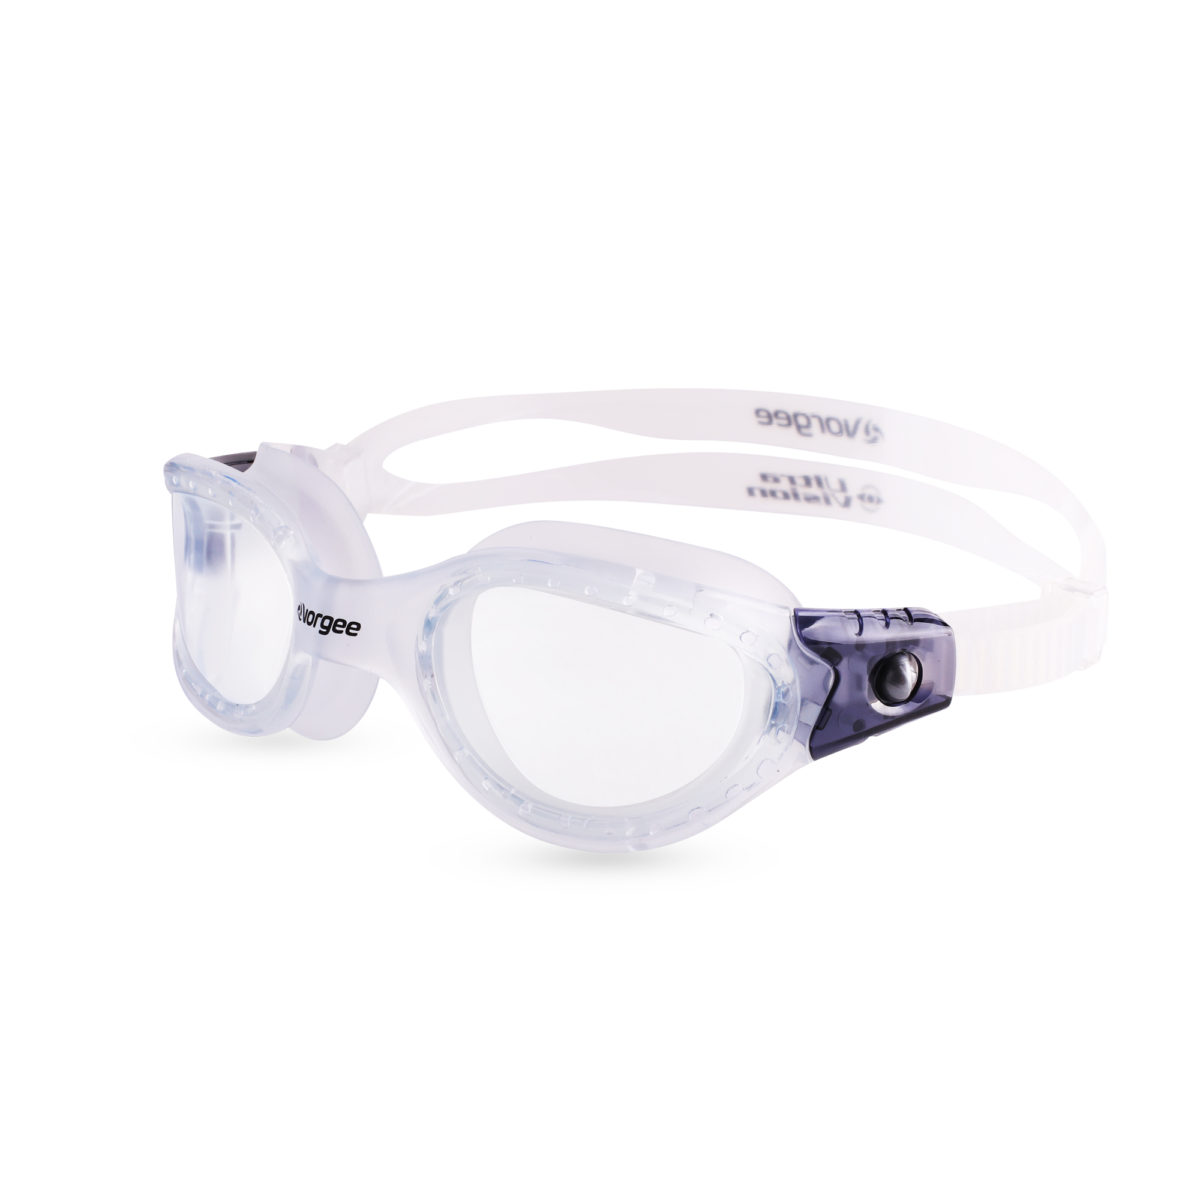 Vortech Max Clear - translucent & black